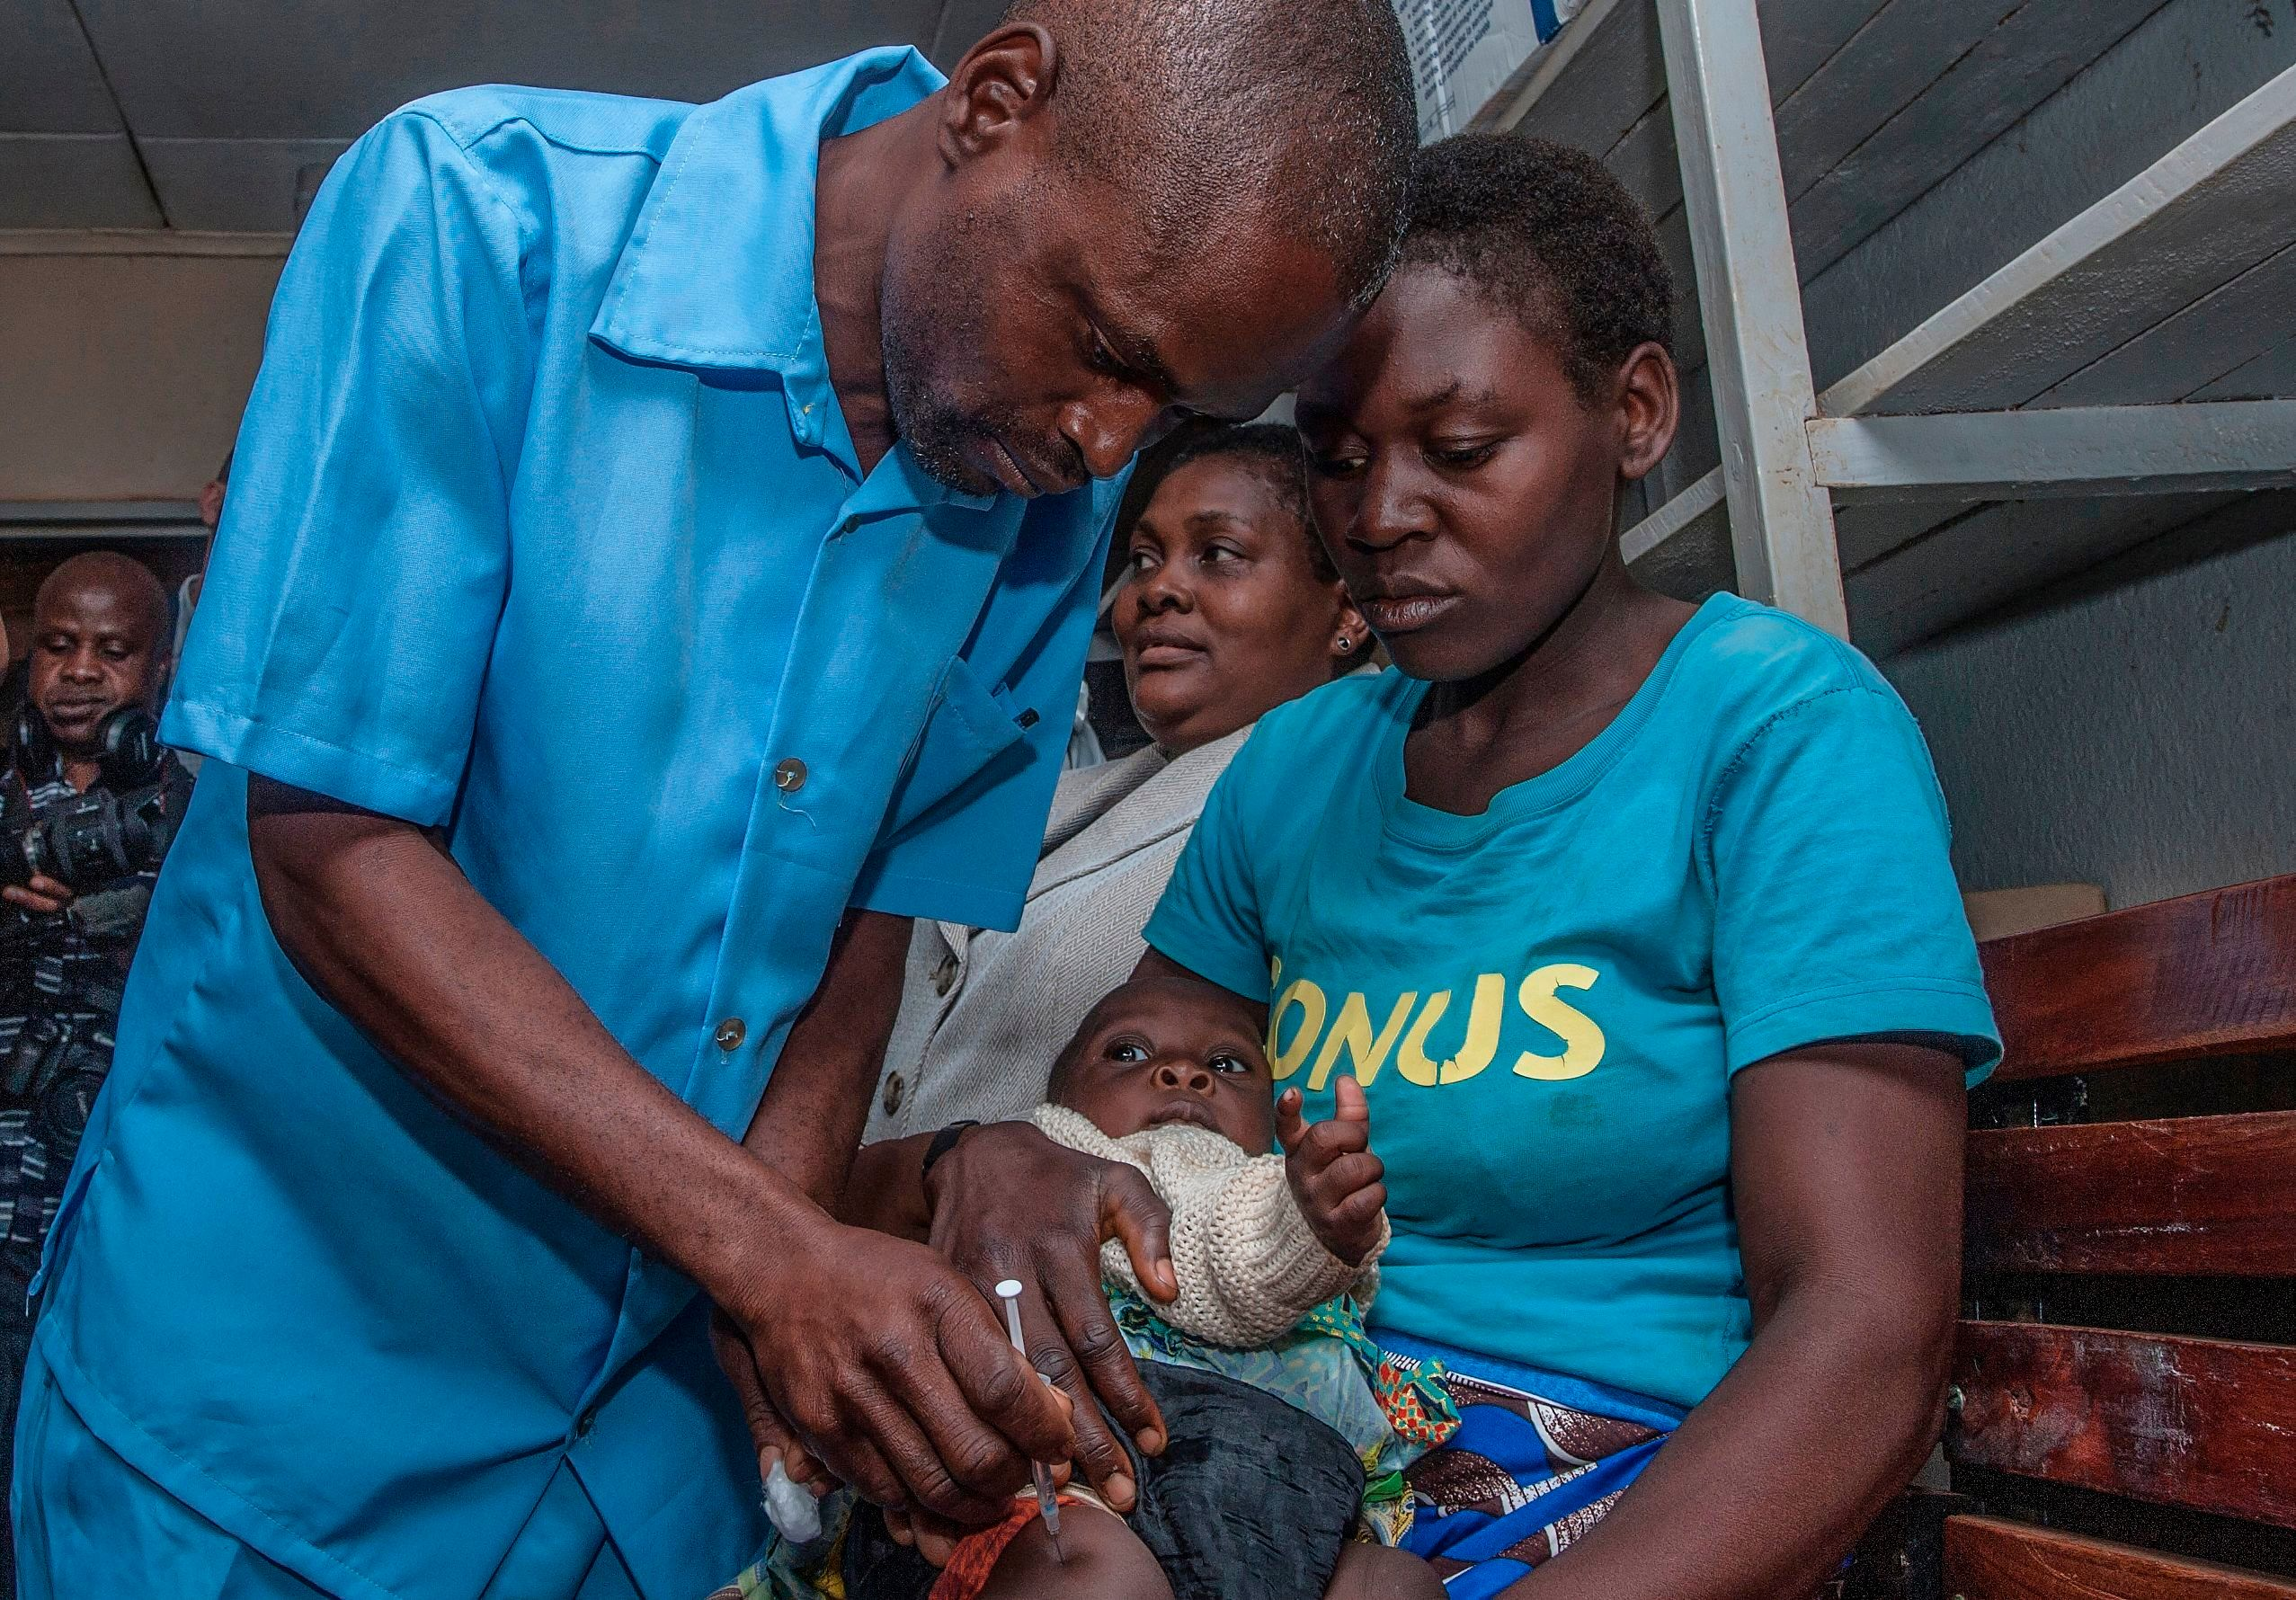 A Health Surveilance Assistant gives a dose of the Malaria Vaccinne into the first recipient on April 23, 2019 at Mitundu Community hospital in Malawi's capital district of Lilongwe on the first day of the Malaria vaccine implementation pilot programme in Malawi aiming to immunise 120,000 children aged two years and under to assess the effectiveness of the pilot vaccine and whether the delivery process is feasible. - Malawi spearhead today large scale pilot tests for the world's most advanced experimental malaria vaccine in a bid to prevent the disease that kills hundreds of thousands across Africa each year. After more than three decades in development and almost $1 billion in investment, the cutting-edge trial will be rolled out in Malawi's capital Lilongwe this week and then in Kenya and Ghana next week. (Photo by AMOS GUMULIRA / AFP)        (Photo credit should read AMOS GUMULIRA/AFP/Getty Images)